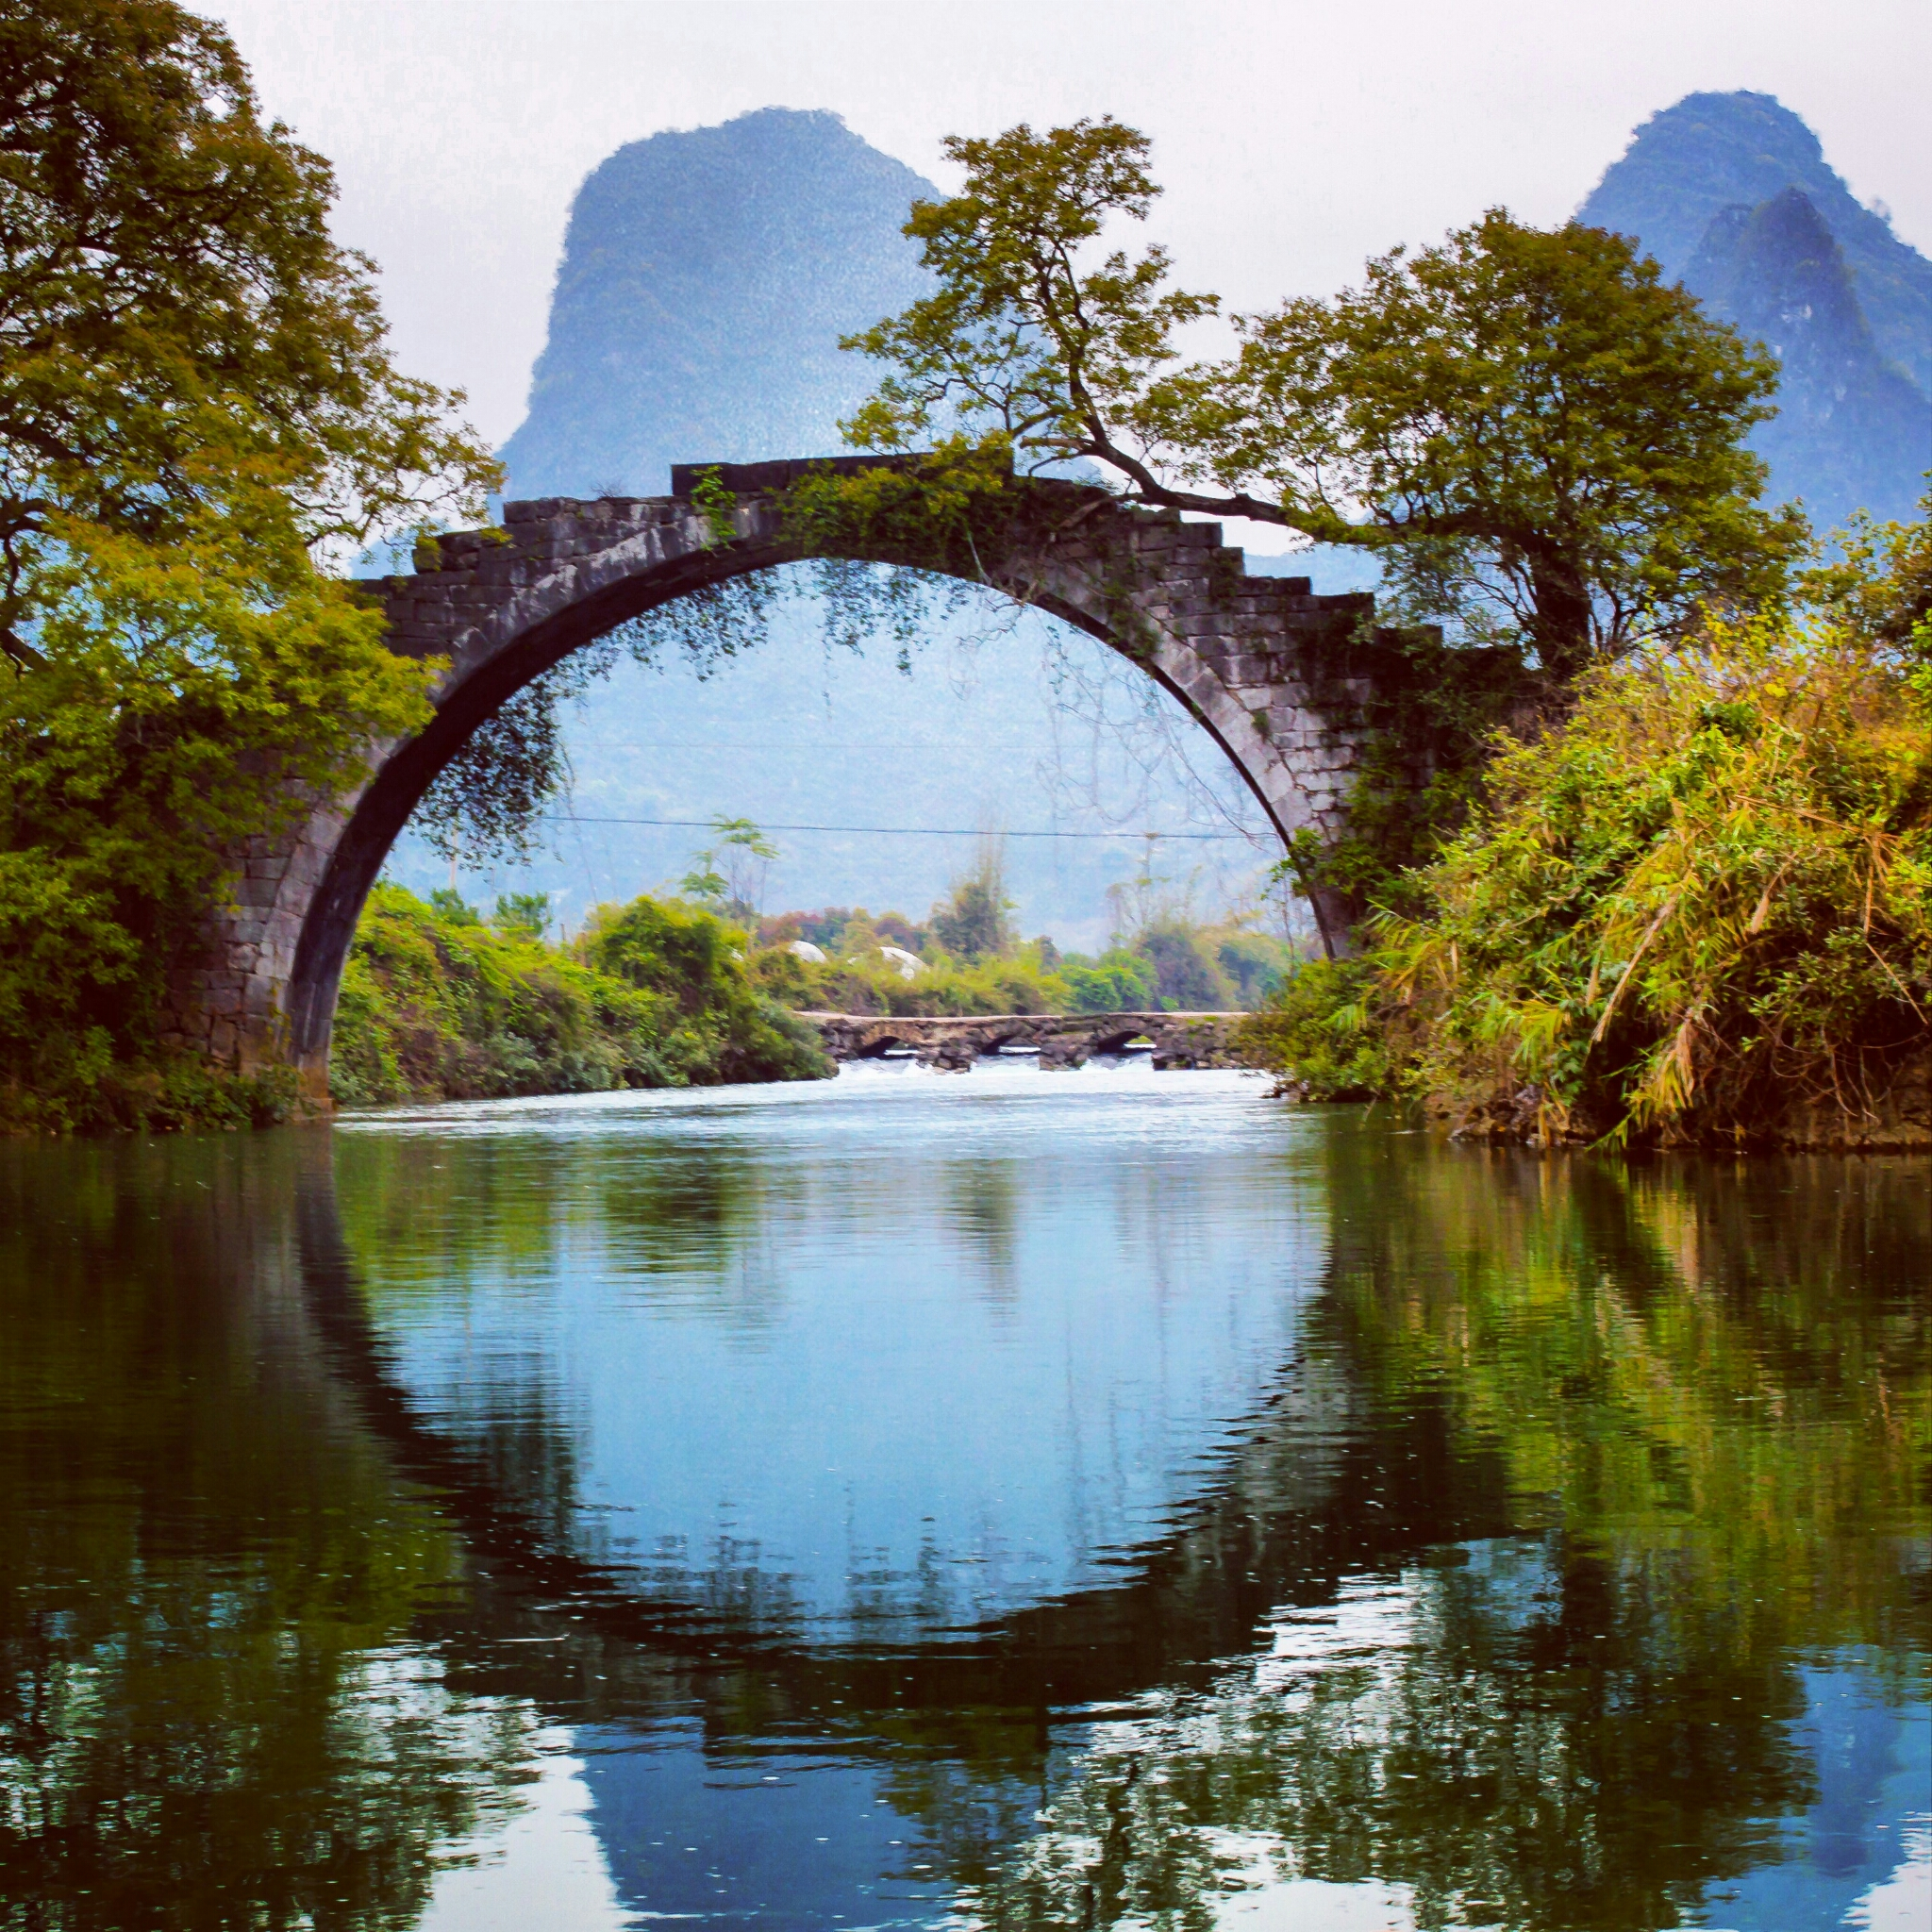 Amazing shot of bridge with reflection on the water